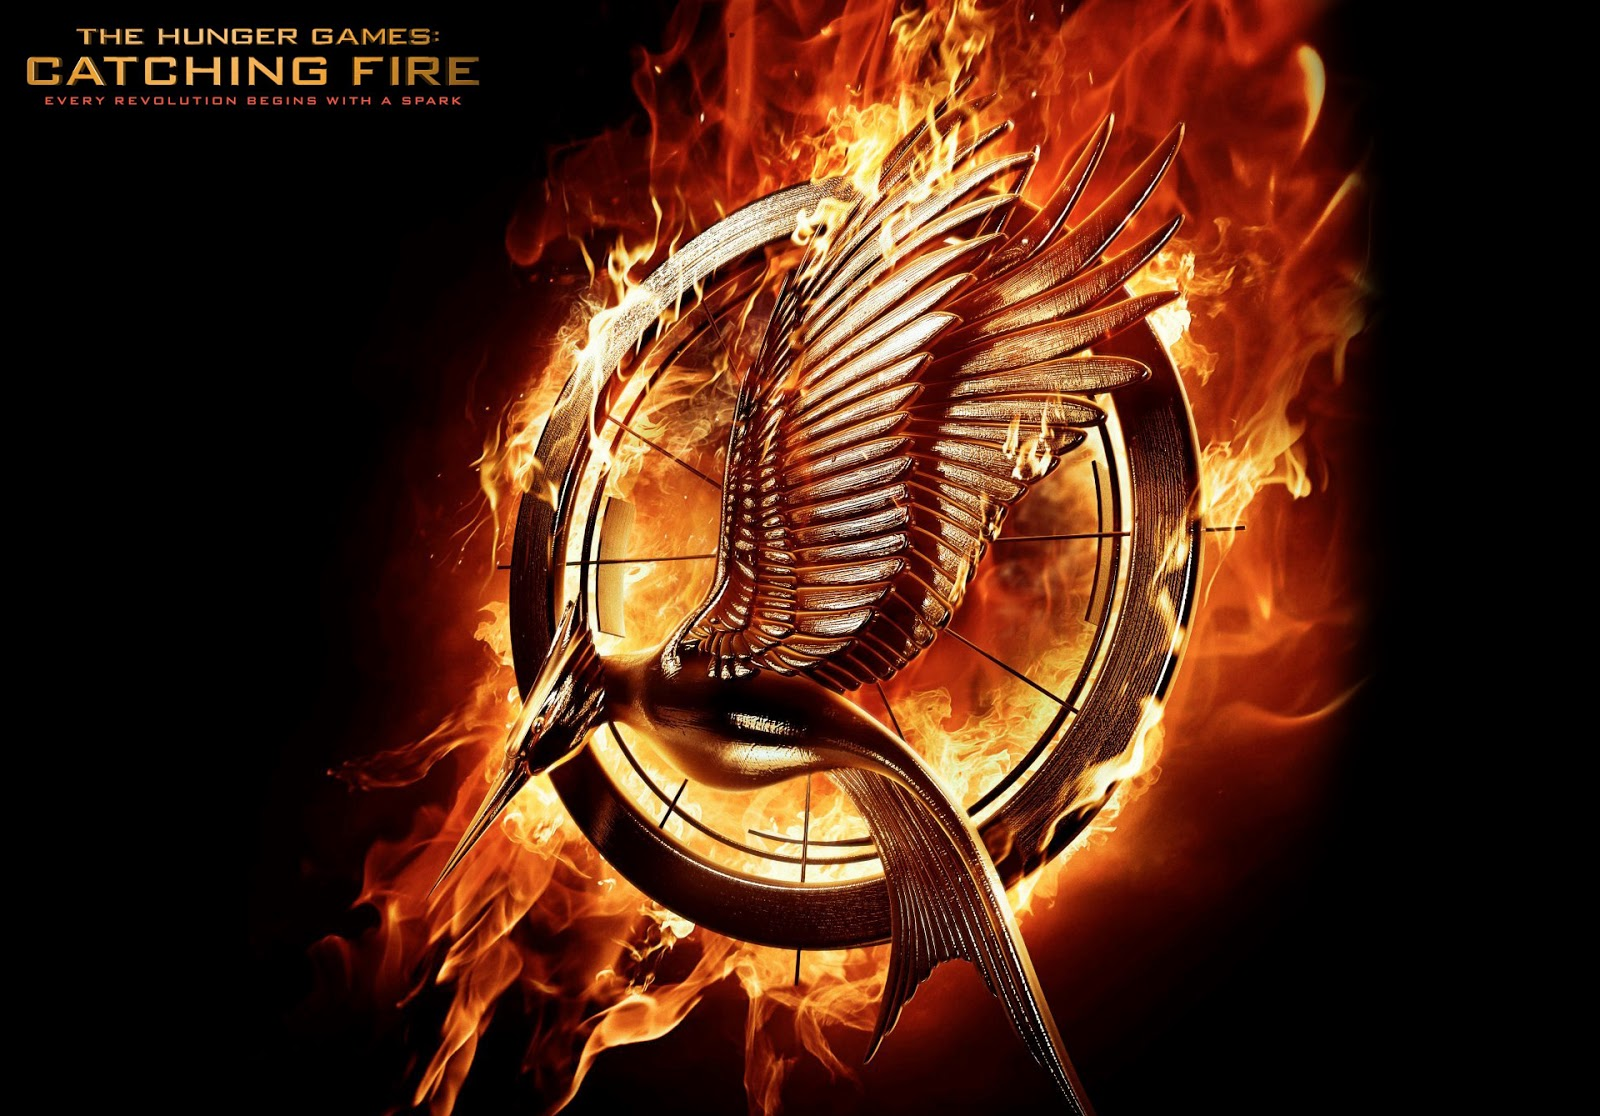 The Hunger Games: Catching Fire - First Trailer 